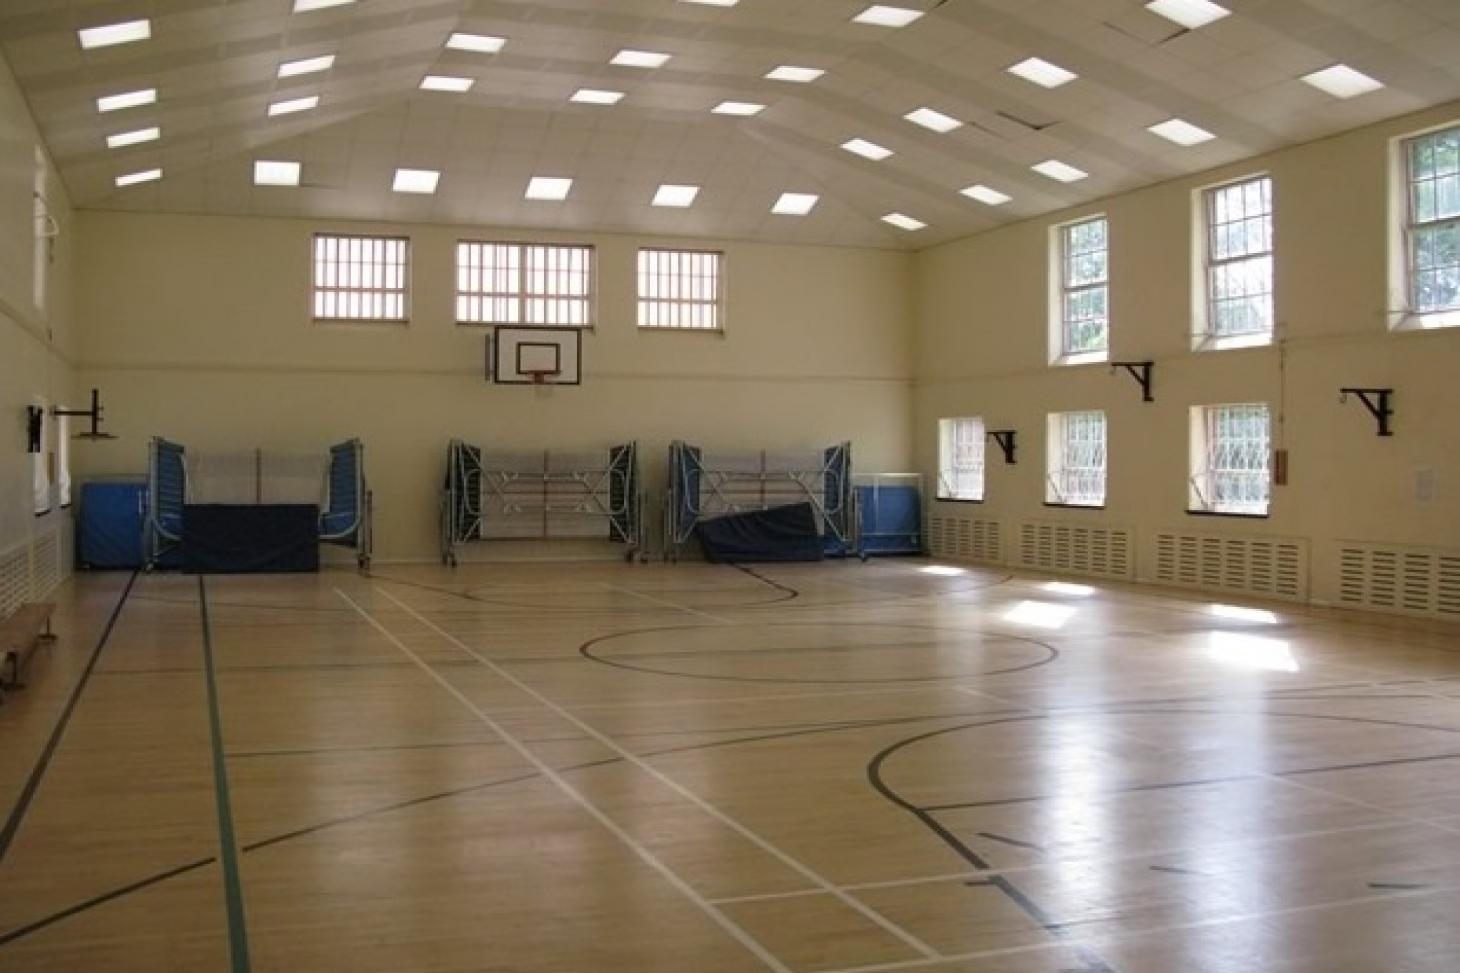 Denbigh High School Indoor basketball court